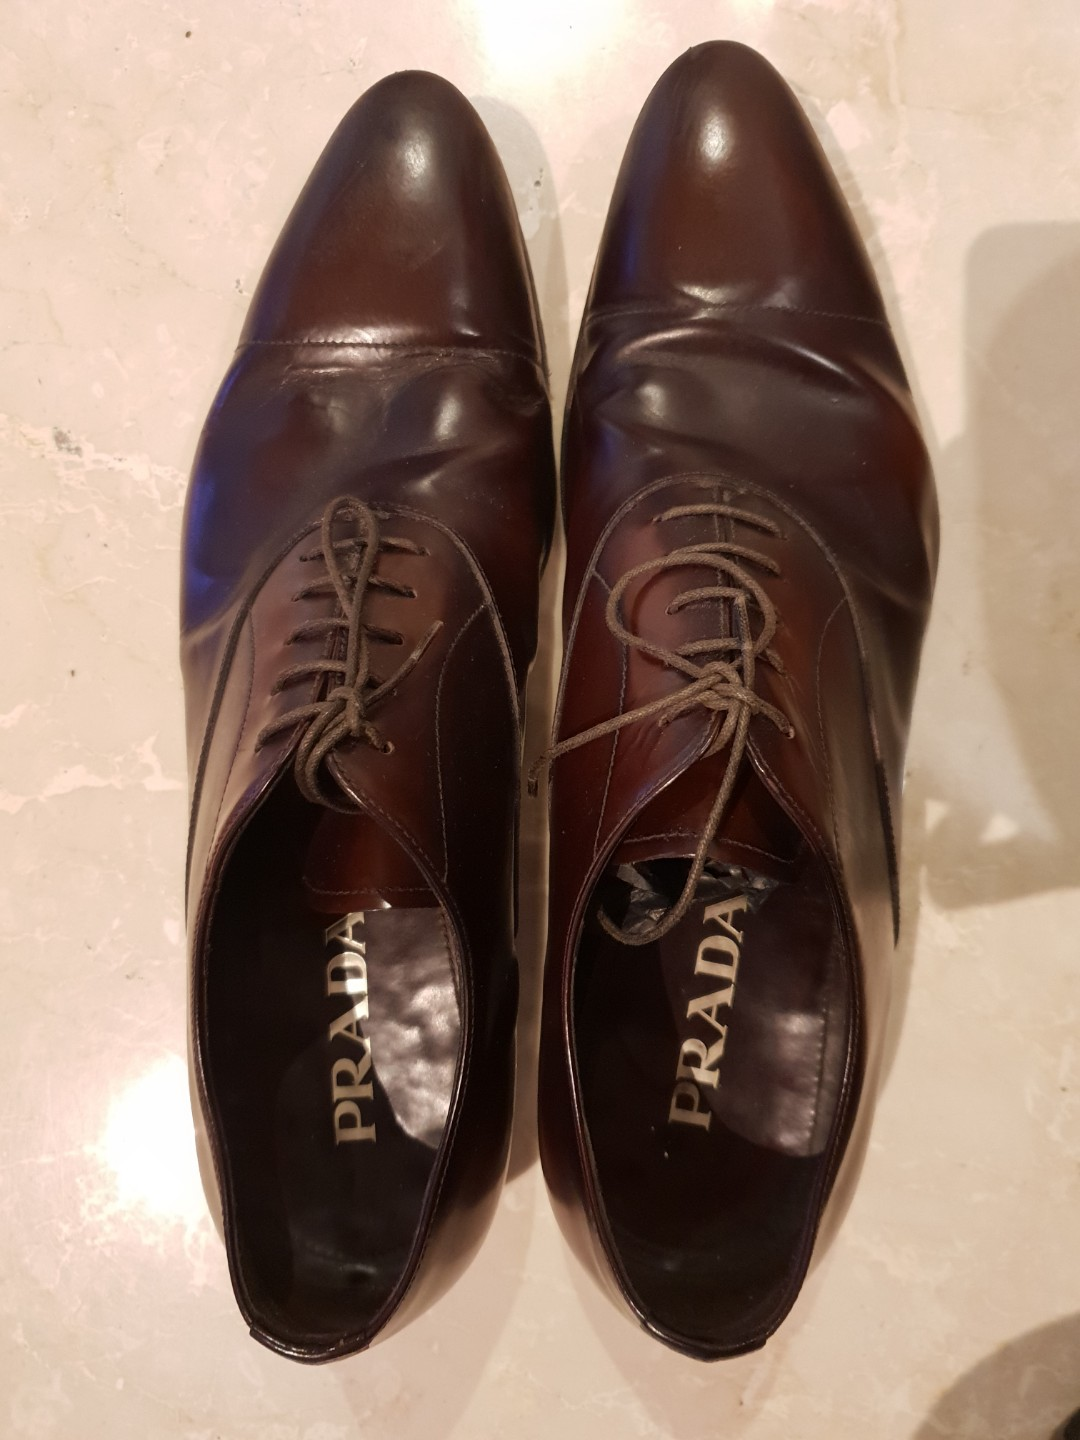 Bruciato Prada Leather Shoes